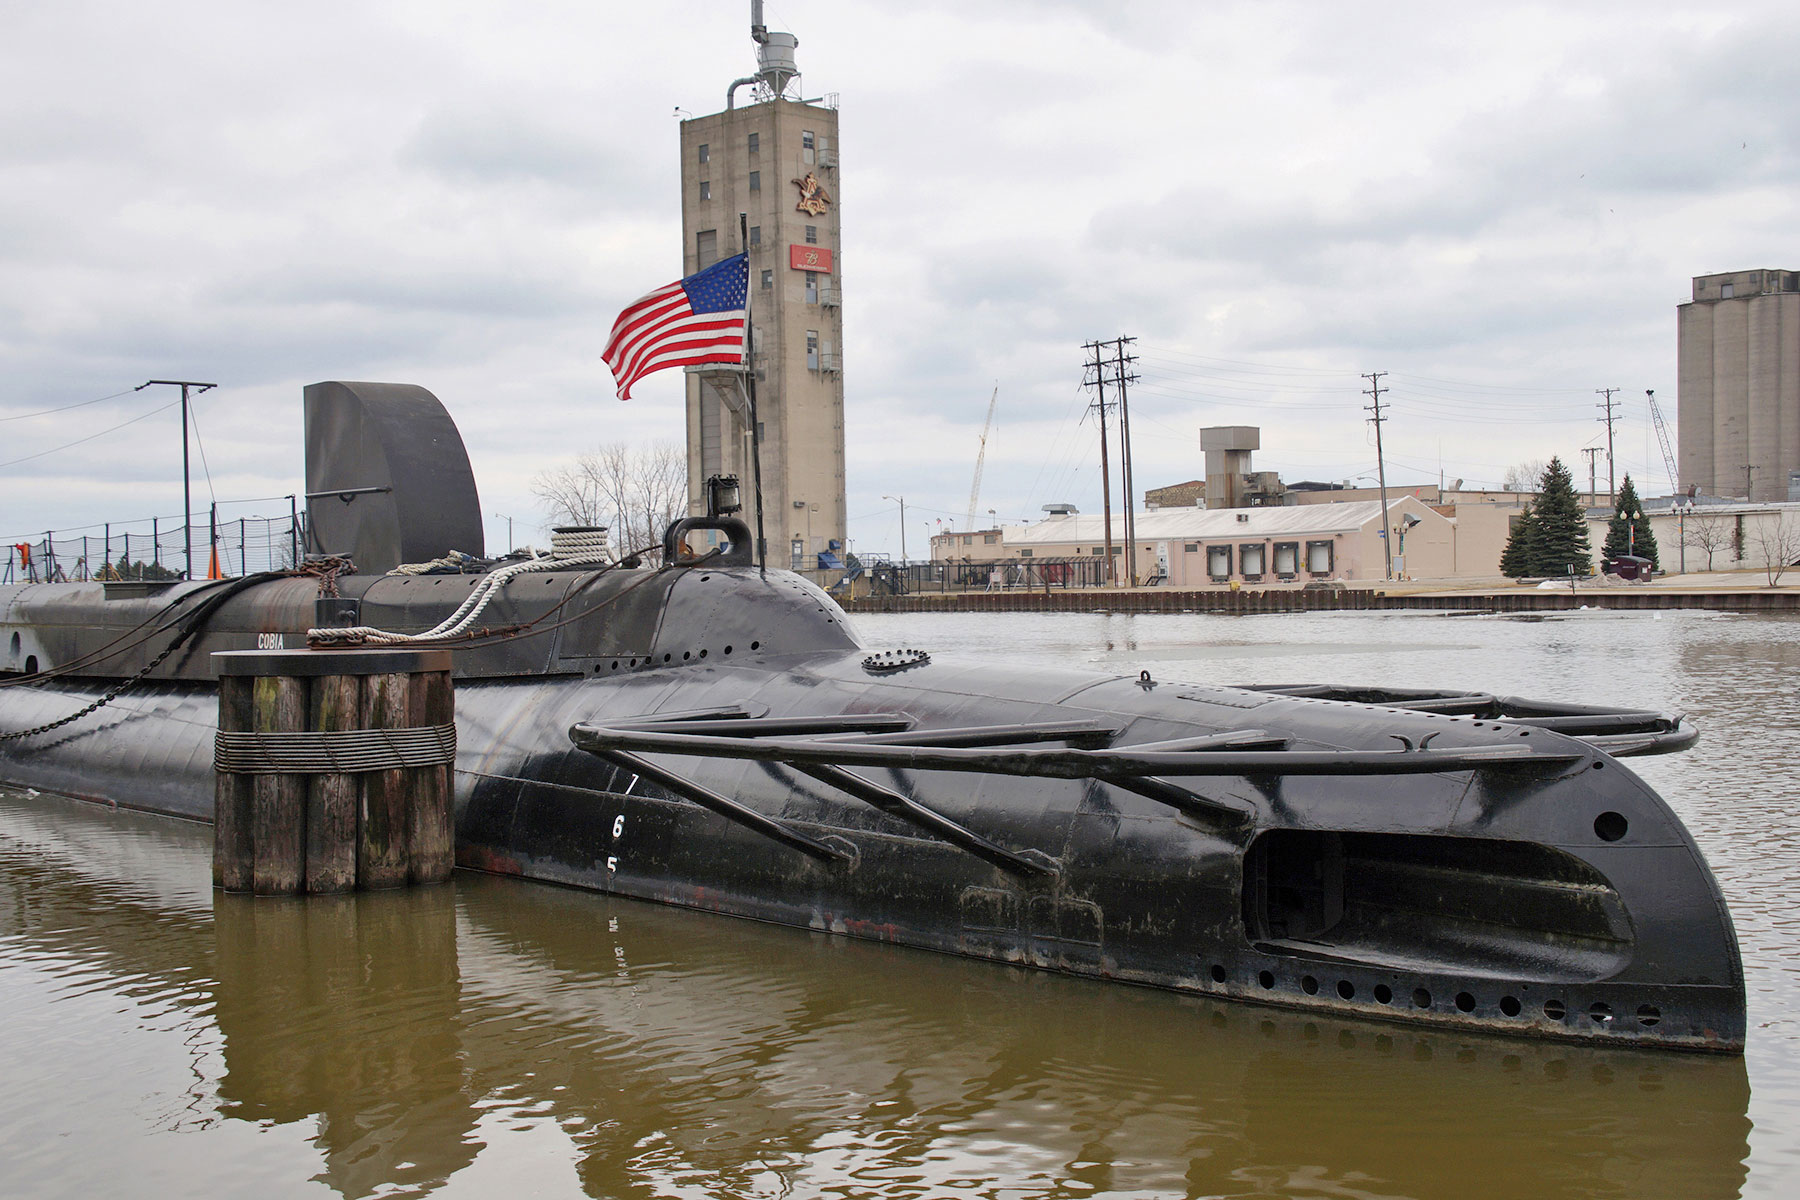 uss-cobia, manitowoc, wisconsin – military history of the